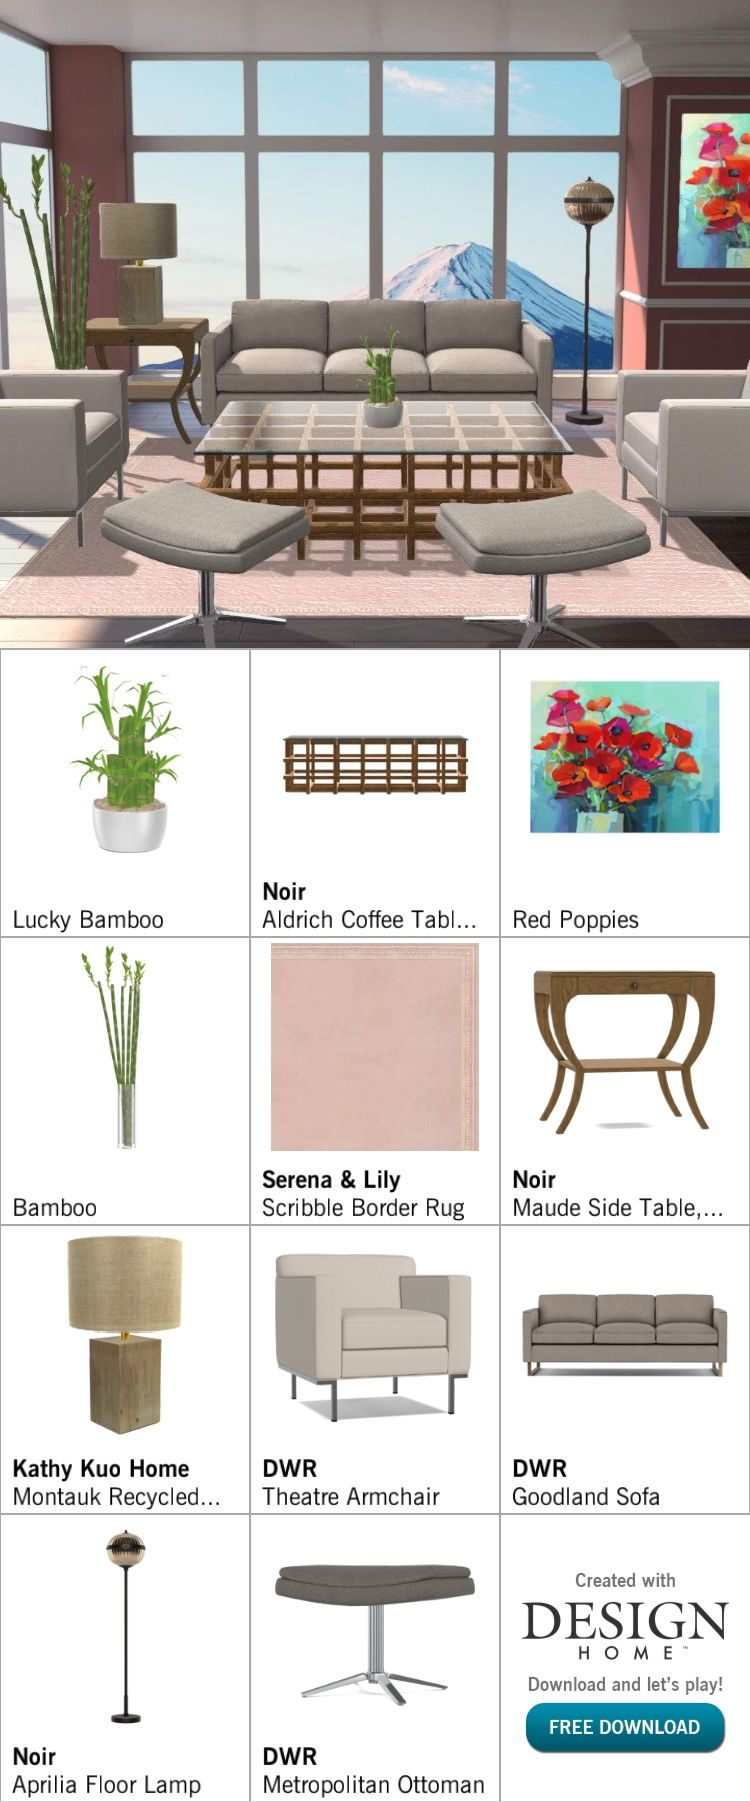 Created with Design Home! | My Home Designs - game app | Pinterest ...